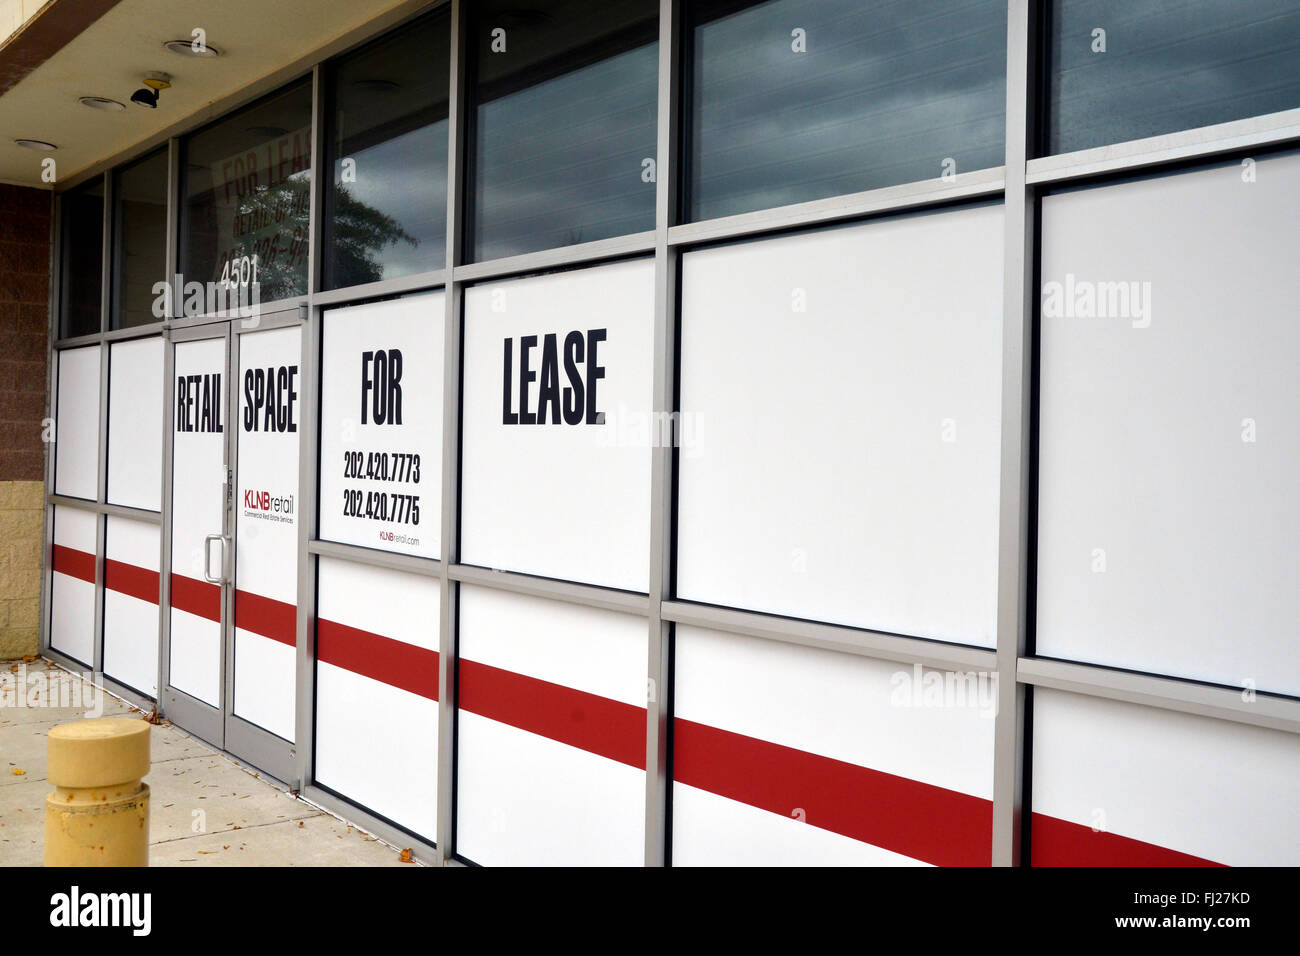 Vacant business with sign saying retail space for lease - Stock Image